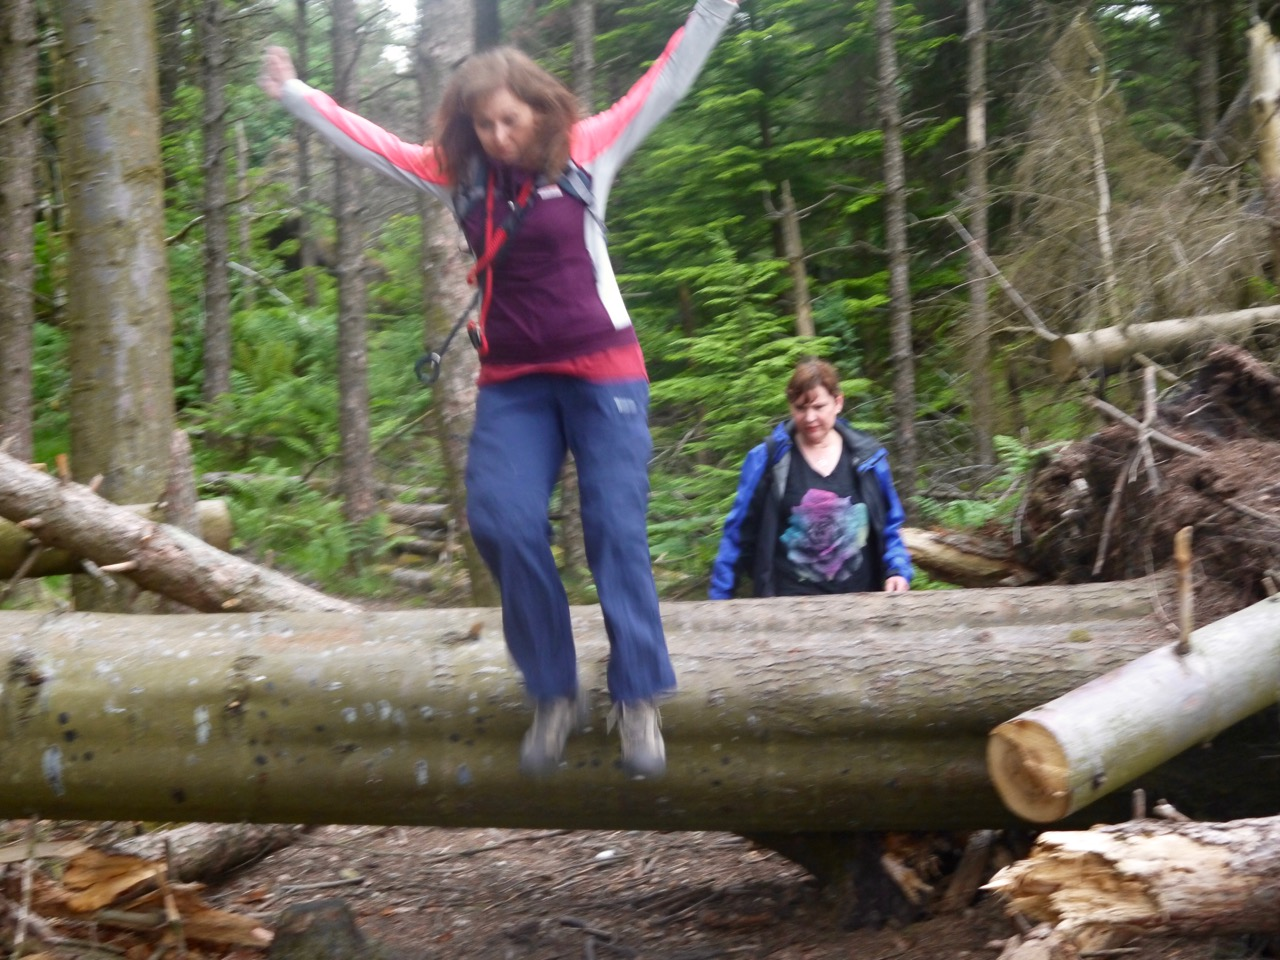 Jumping the fallen trees